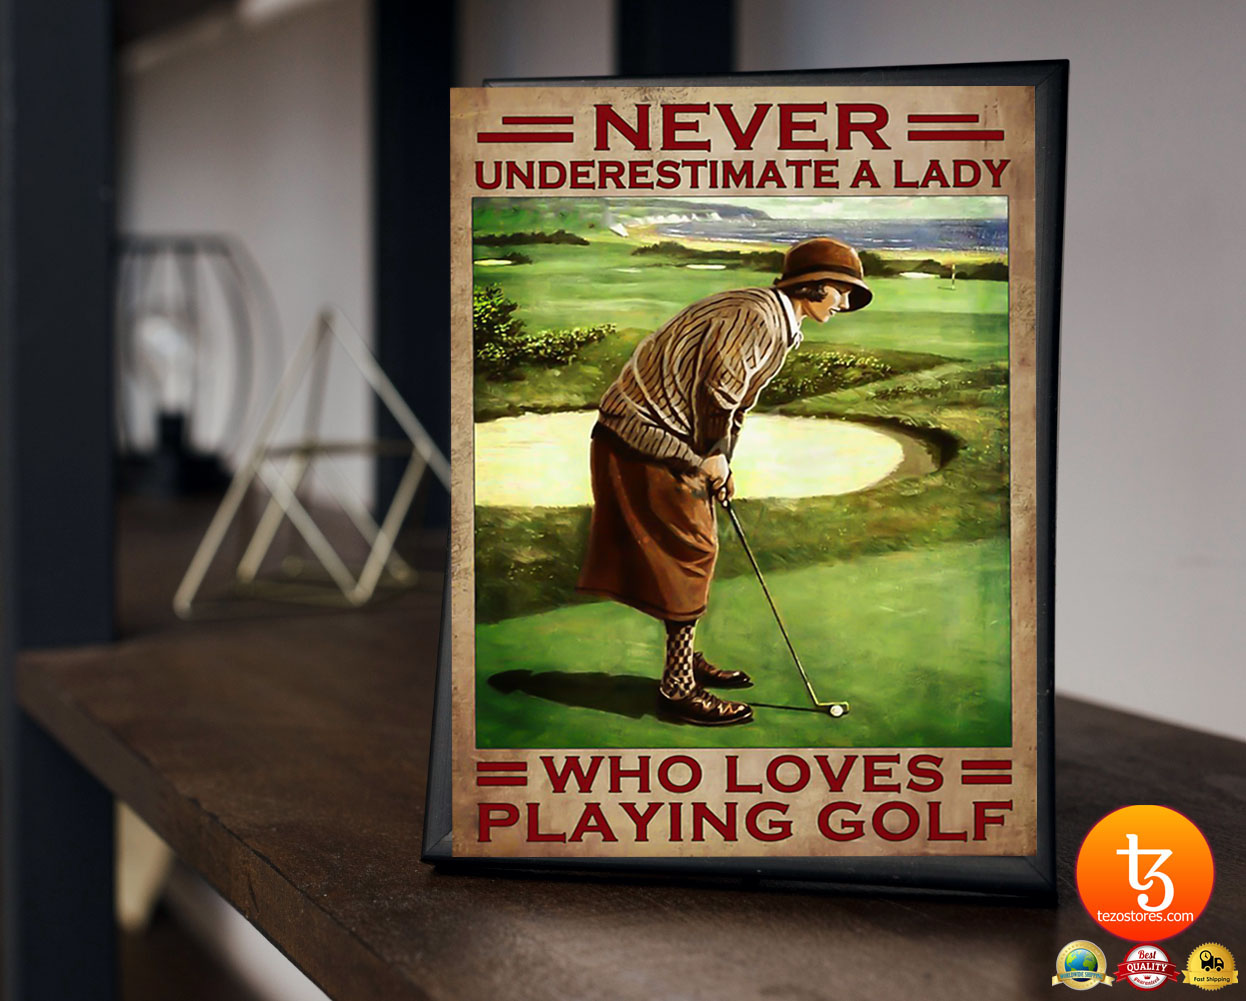 Never underestimate a lady who loves playing golf poster 23